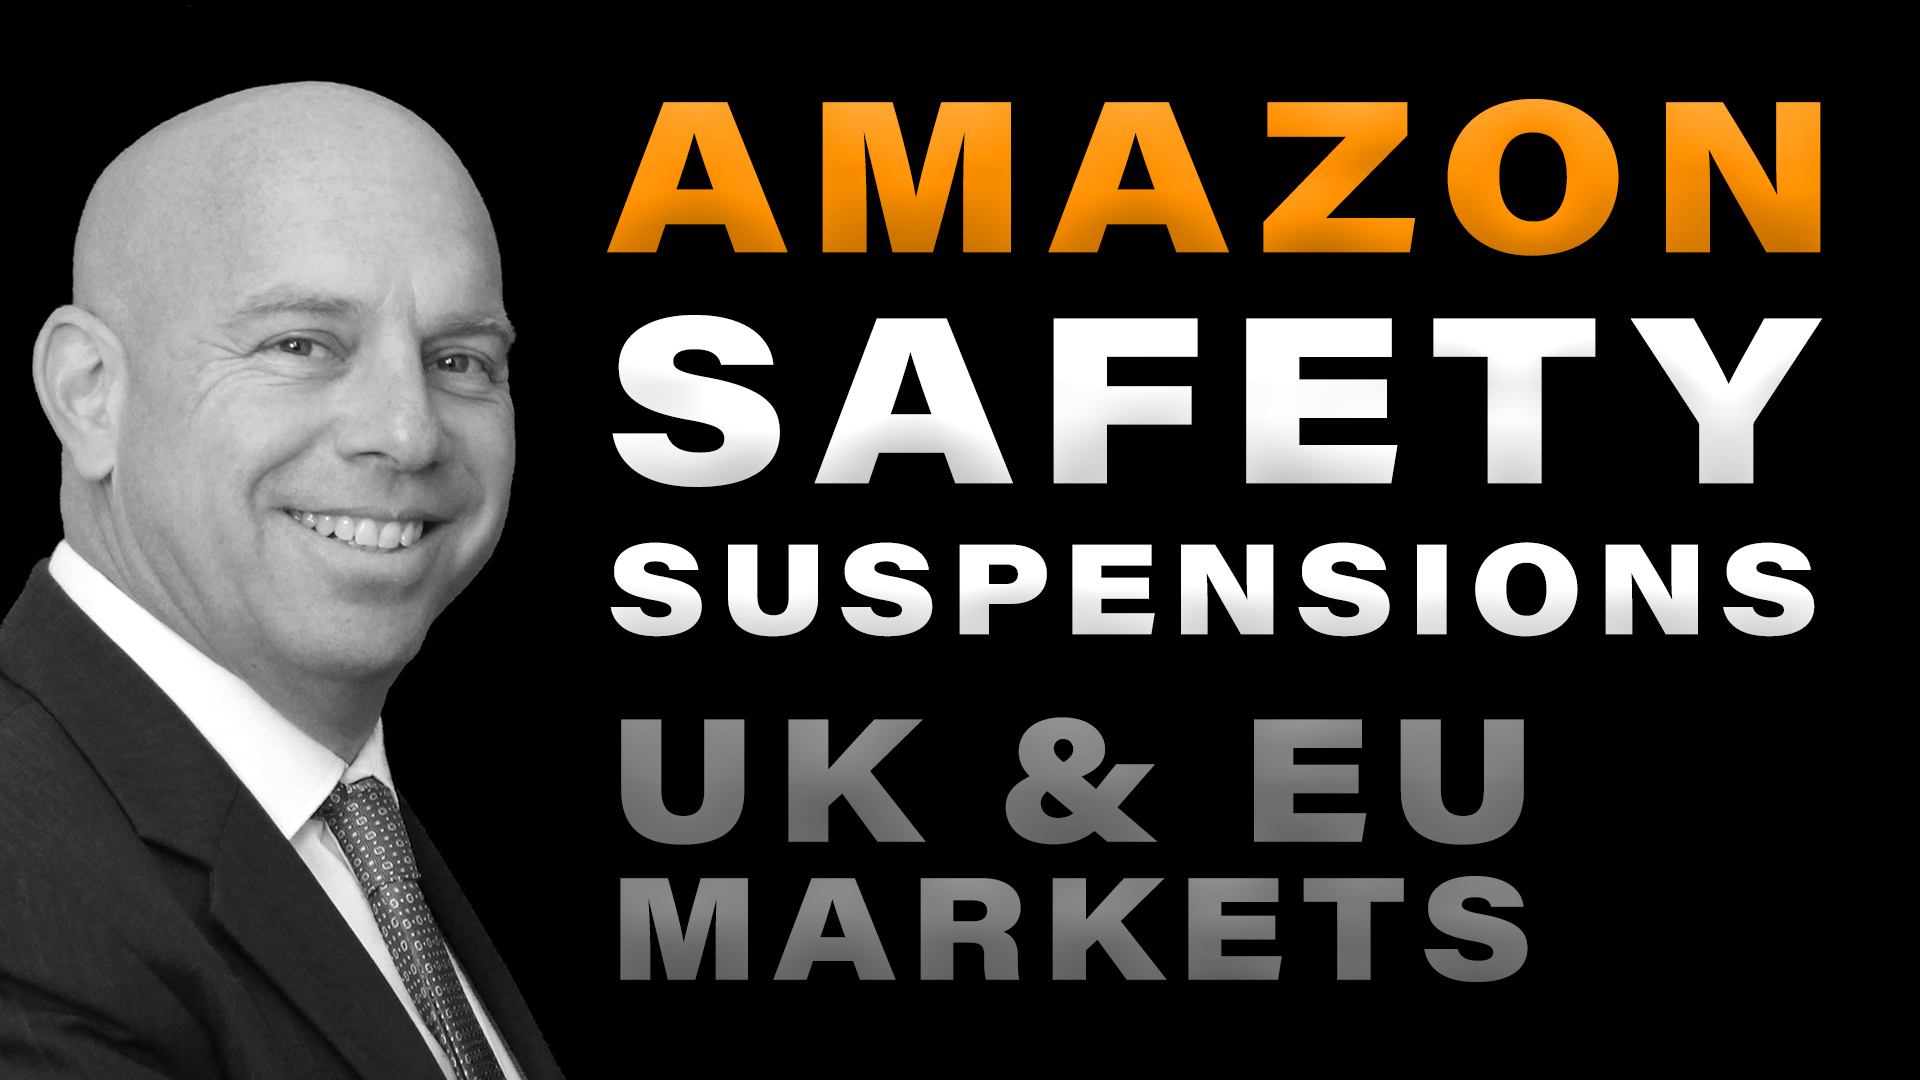 Amazon Seller Safety Suspensions in UK & EU